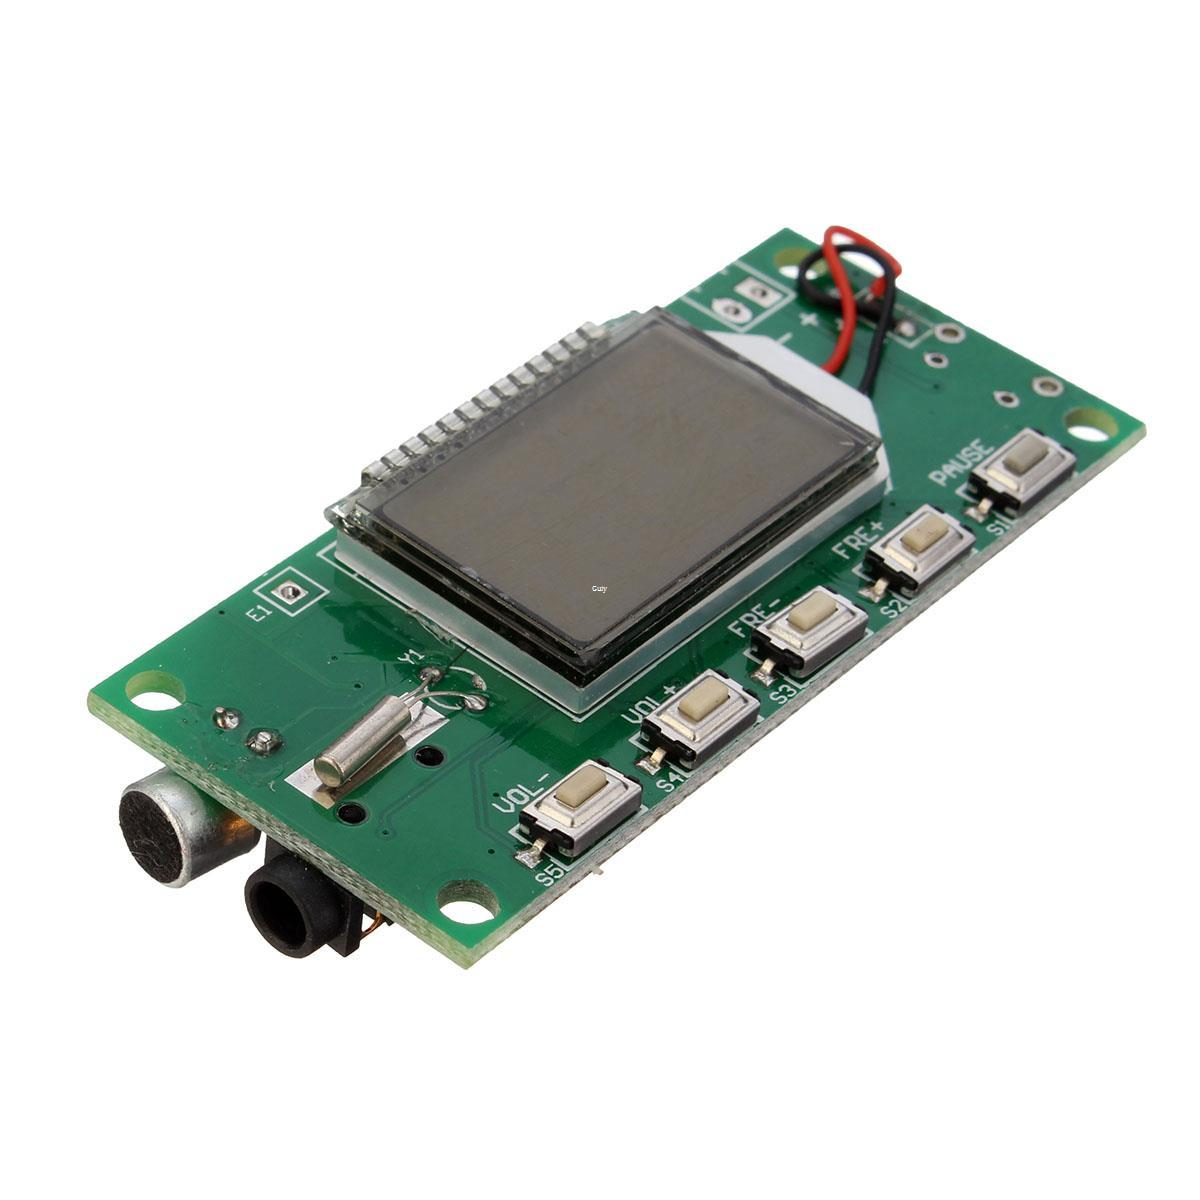 2018 Dsp Pll 87 108mhz Digital Wireless Microphone Stereo Fm Spy Circuit Transmitter Module Board 265x49mm From Guiy 88